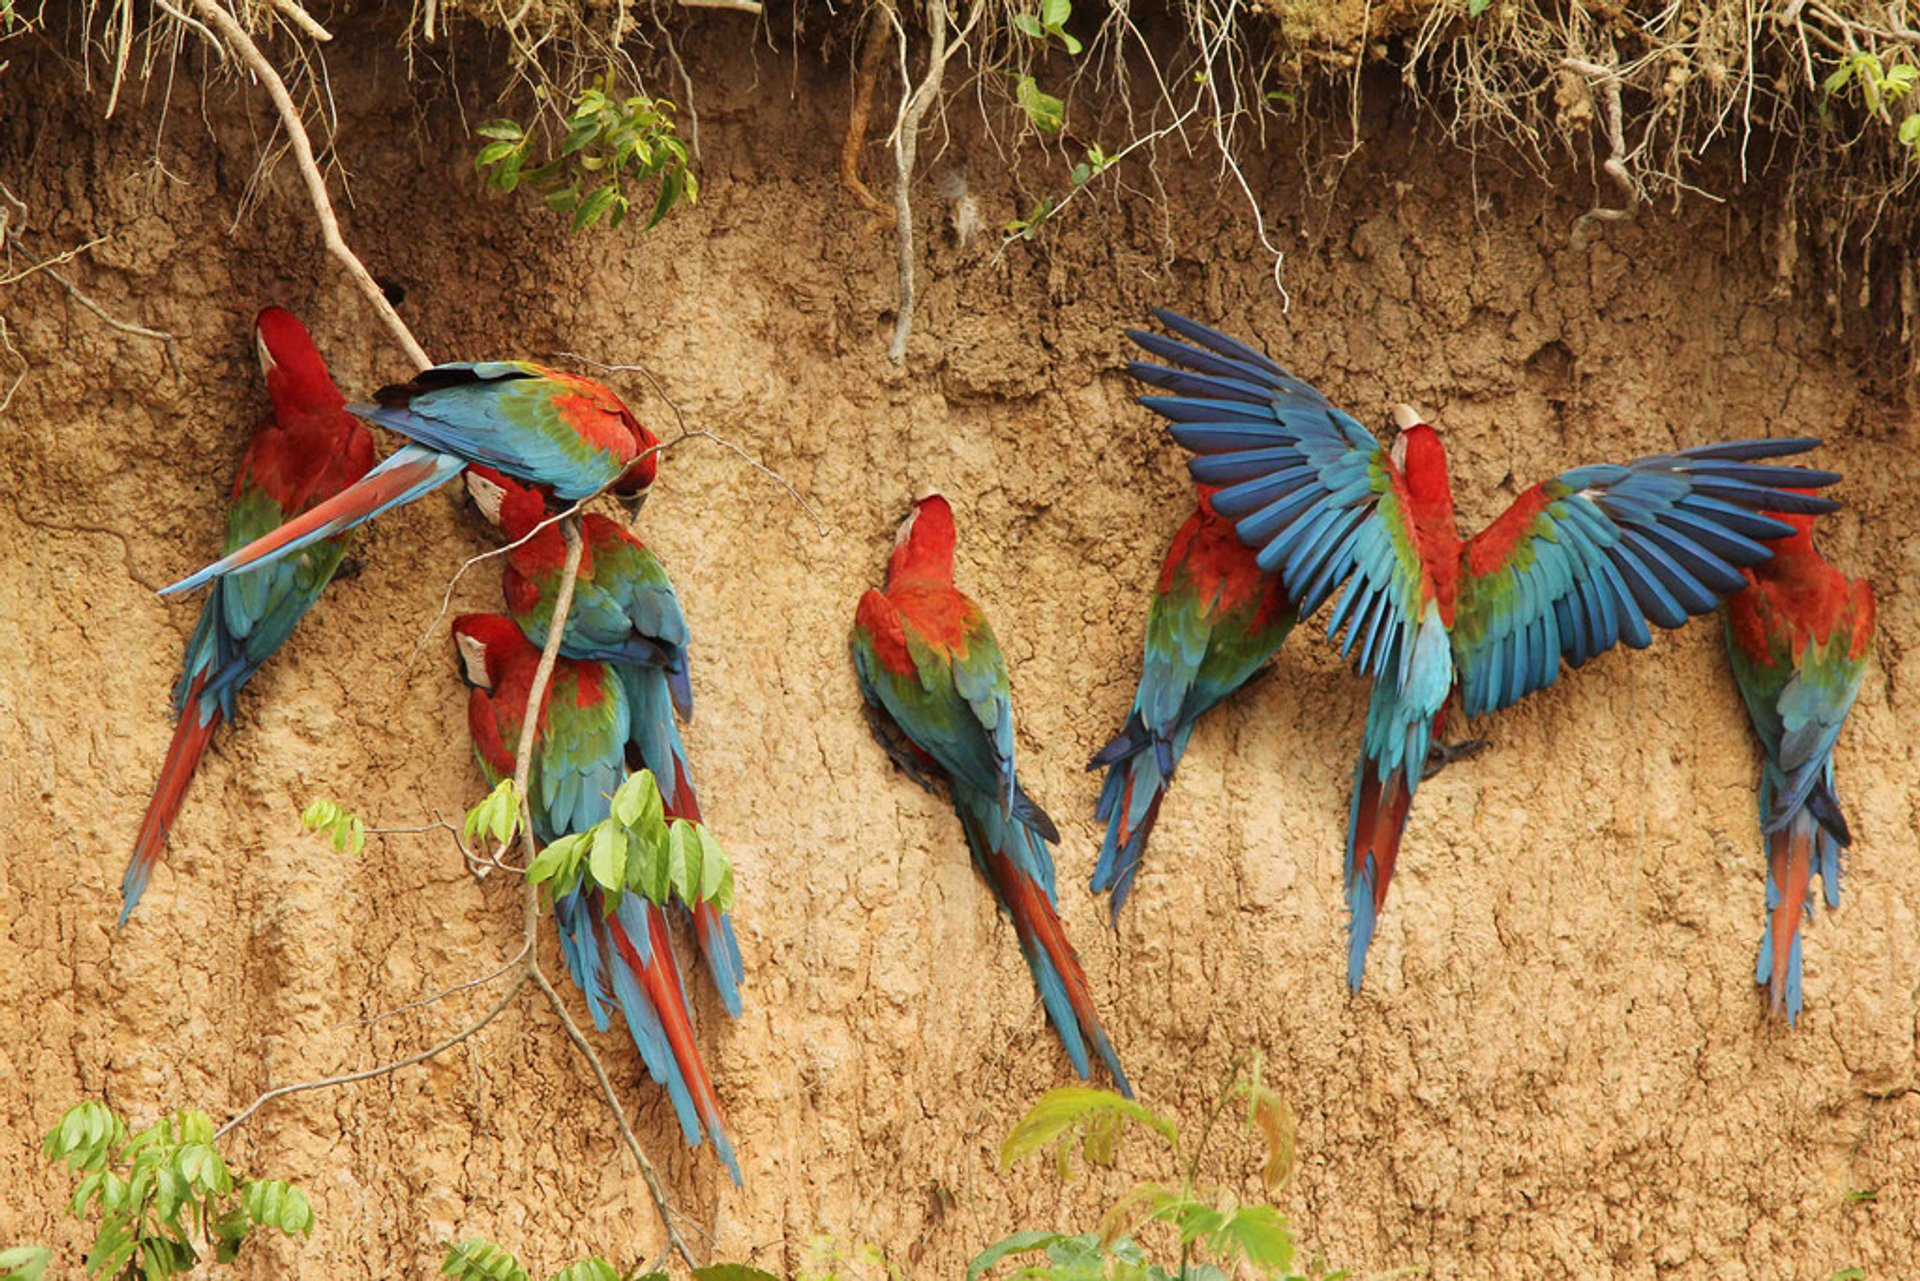 Macaw. Photographed in Peru near the Heath River Wildlife Center, La Paz Department, Bolivia 2020